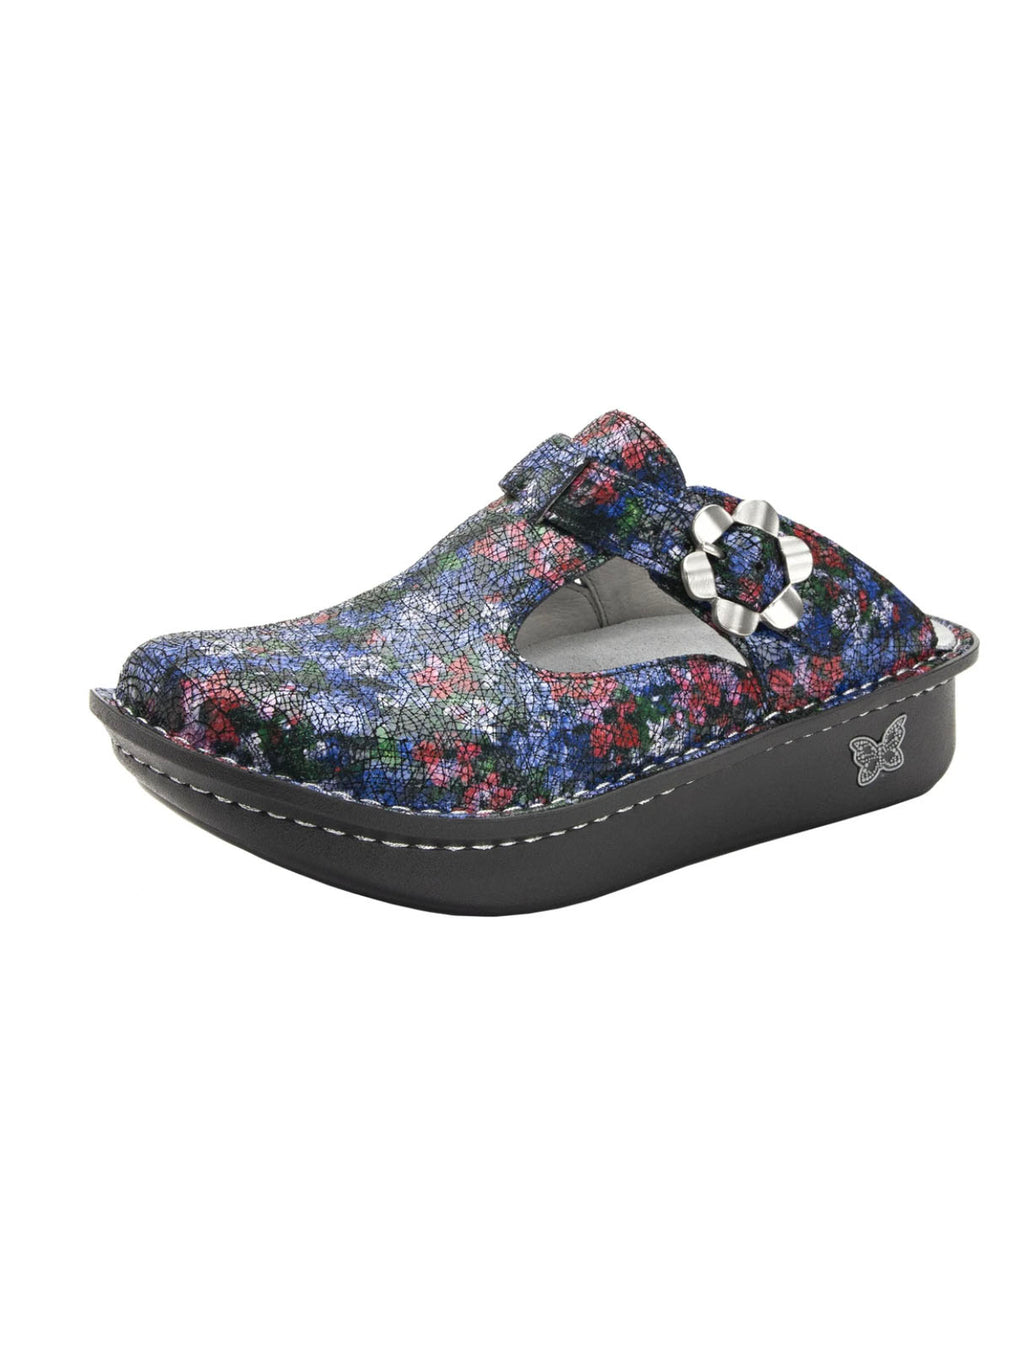 Alegria Classic Rocker Clog in Fieldings